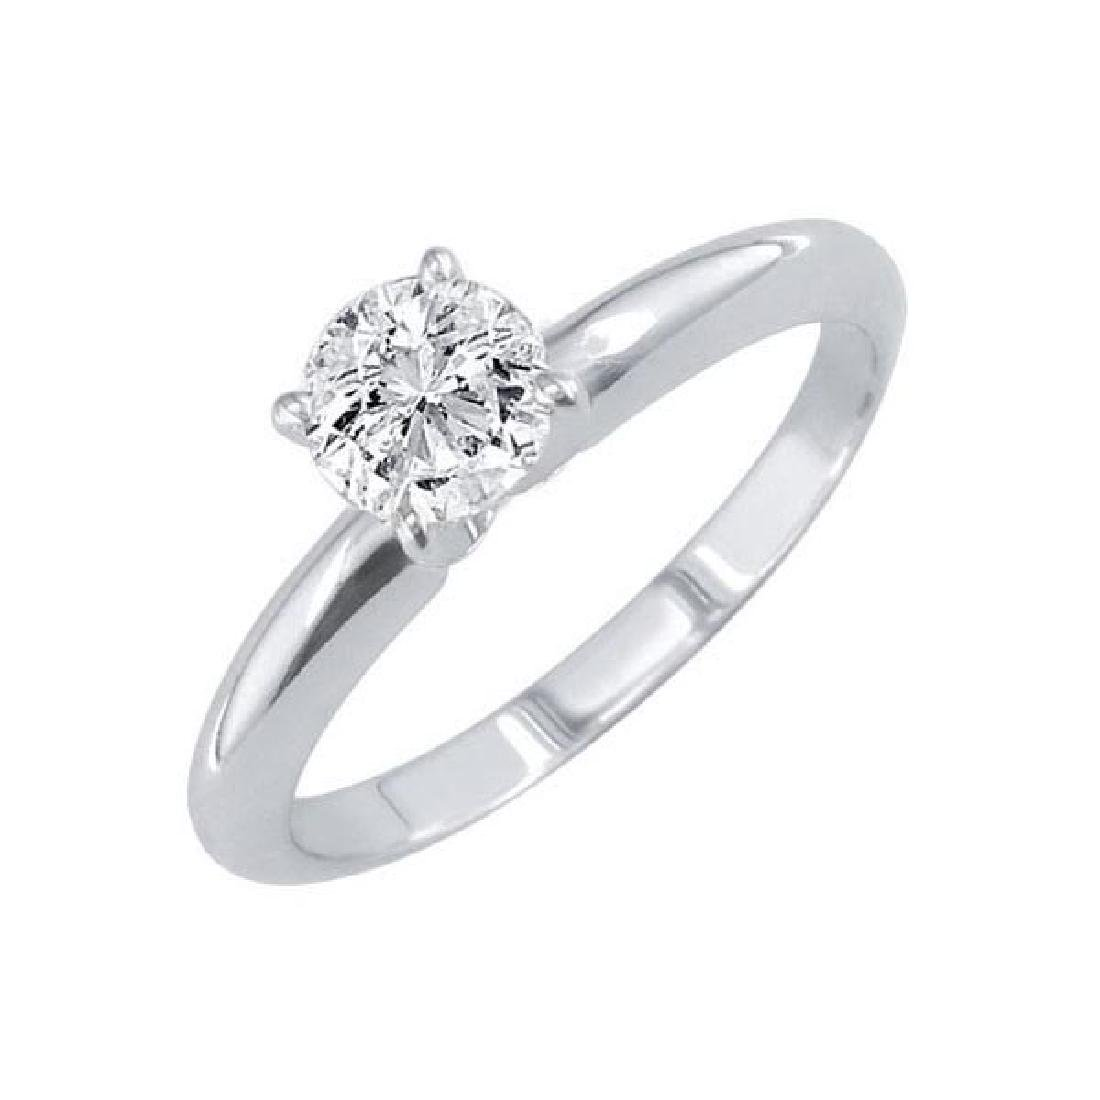 Certified 1.07 CTW Round Diamond Solitaire 14k Ring F/I